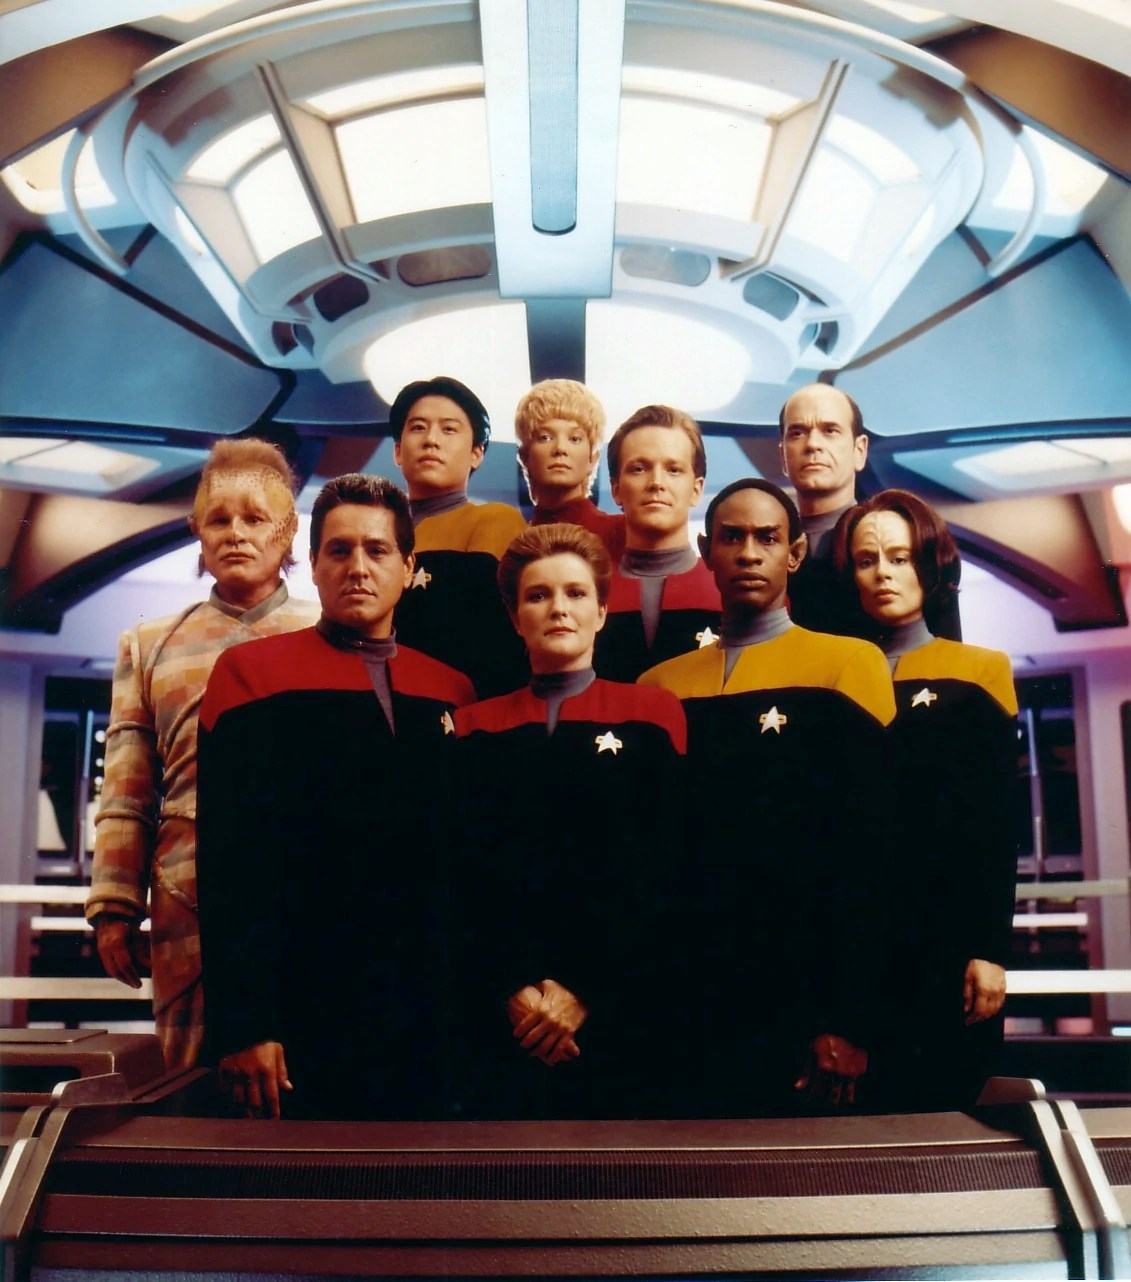 Voyager: Upstarting the upstarts